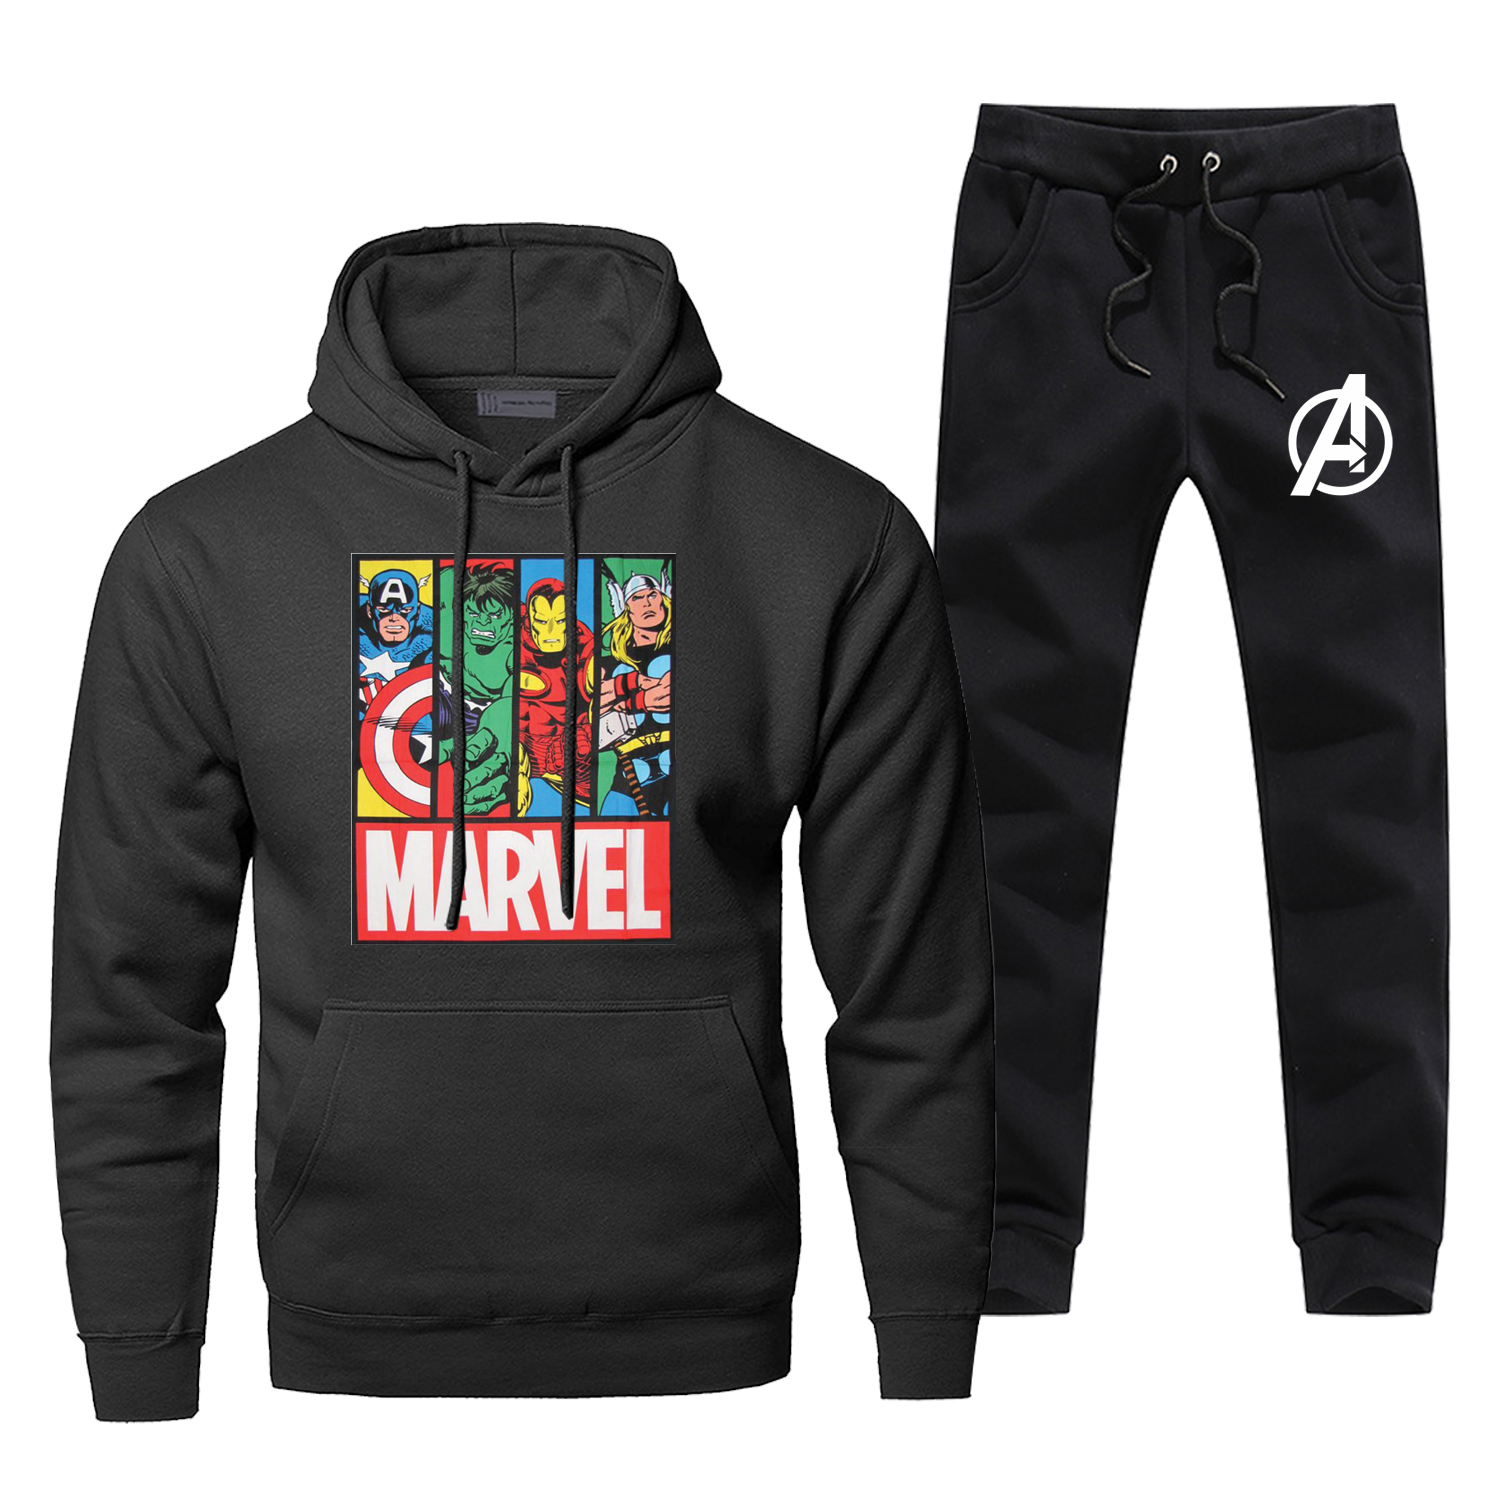 Super Hero Print Men's Sets Avengers Marvel Comic Casual Sportsman Wear 2019 New Fashion Fleece Fitness Winter Pants Sweatshirts